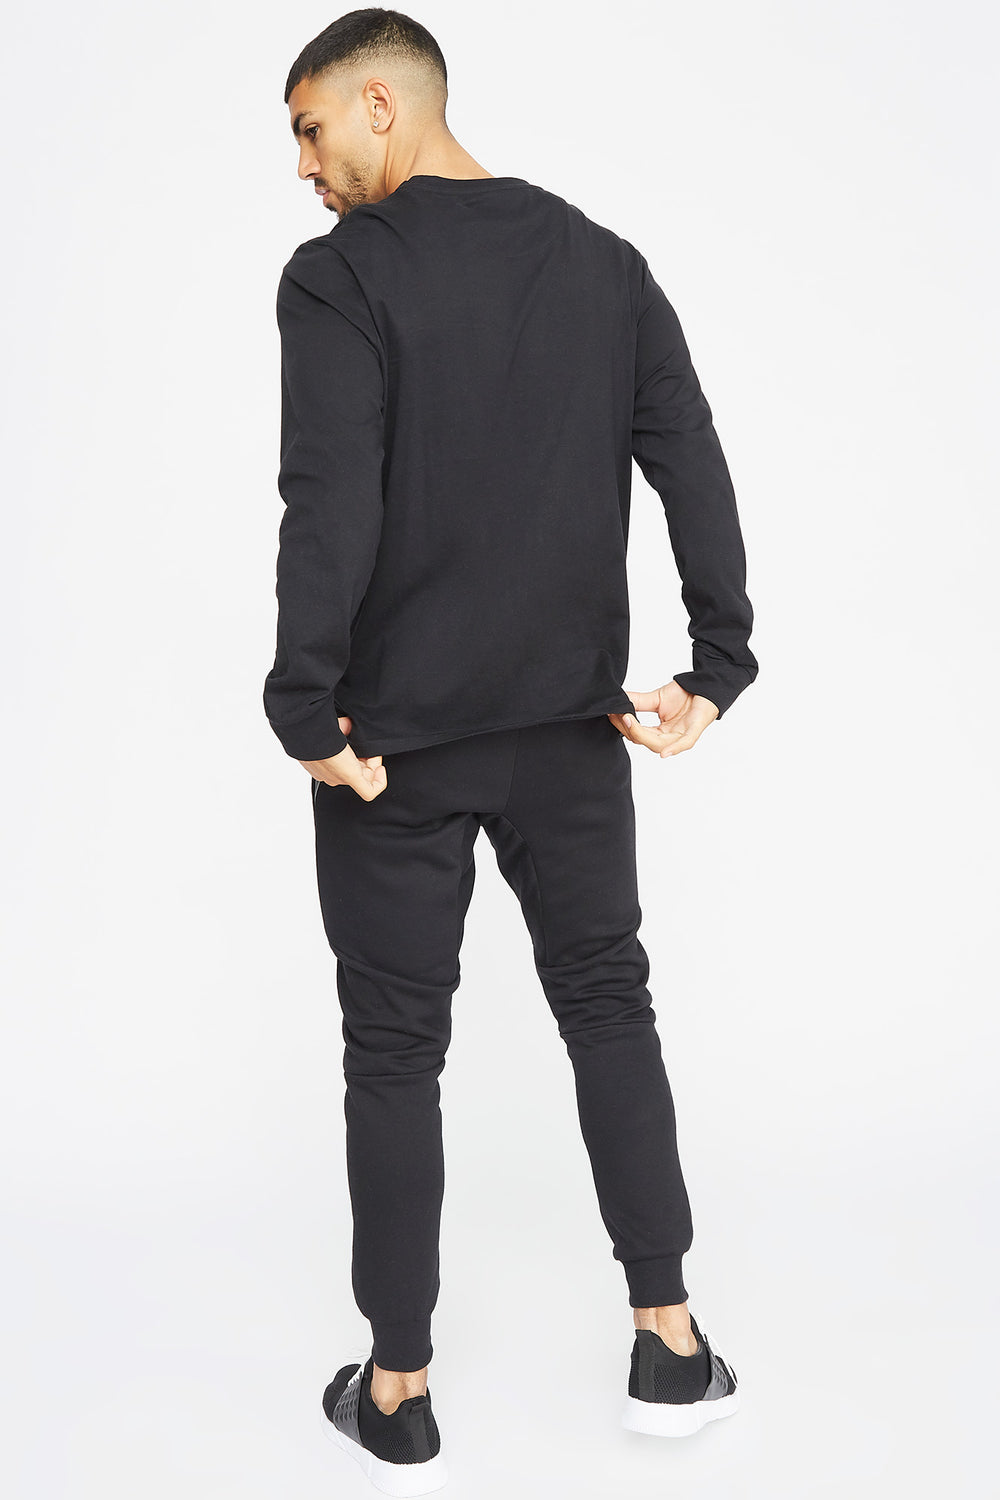 Textured Panel Jogger Black